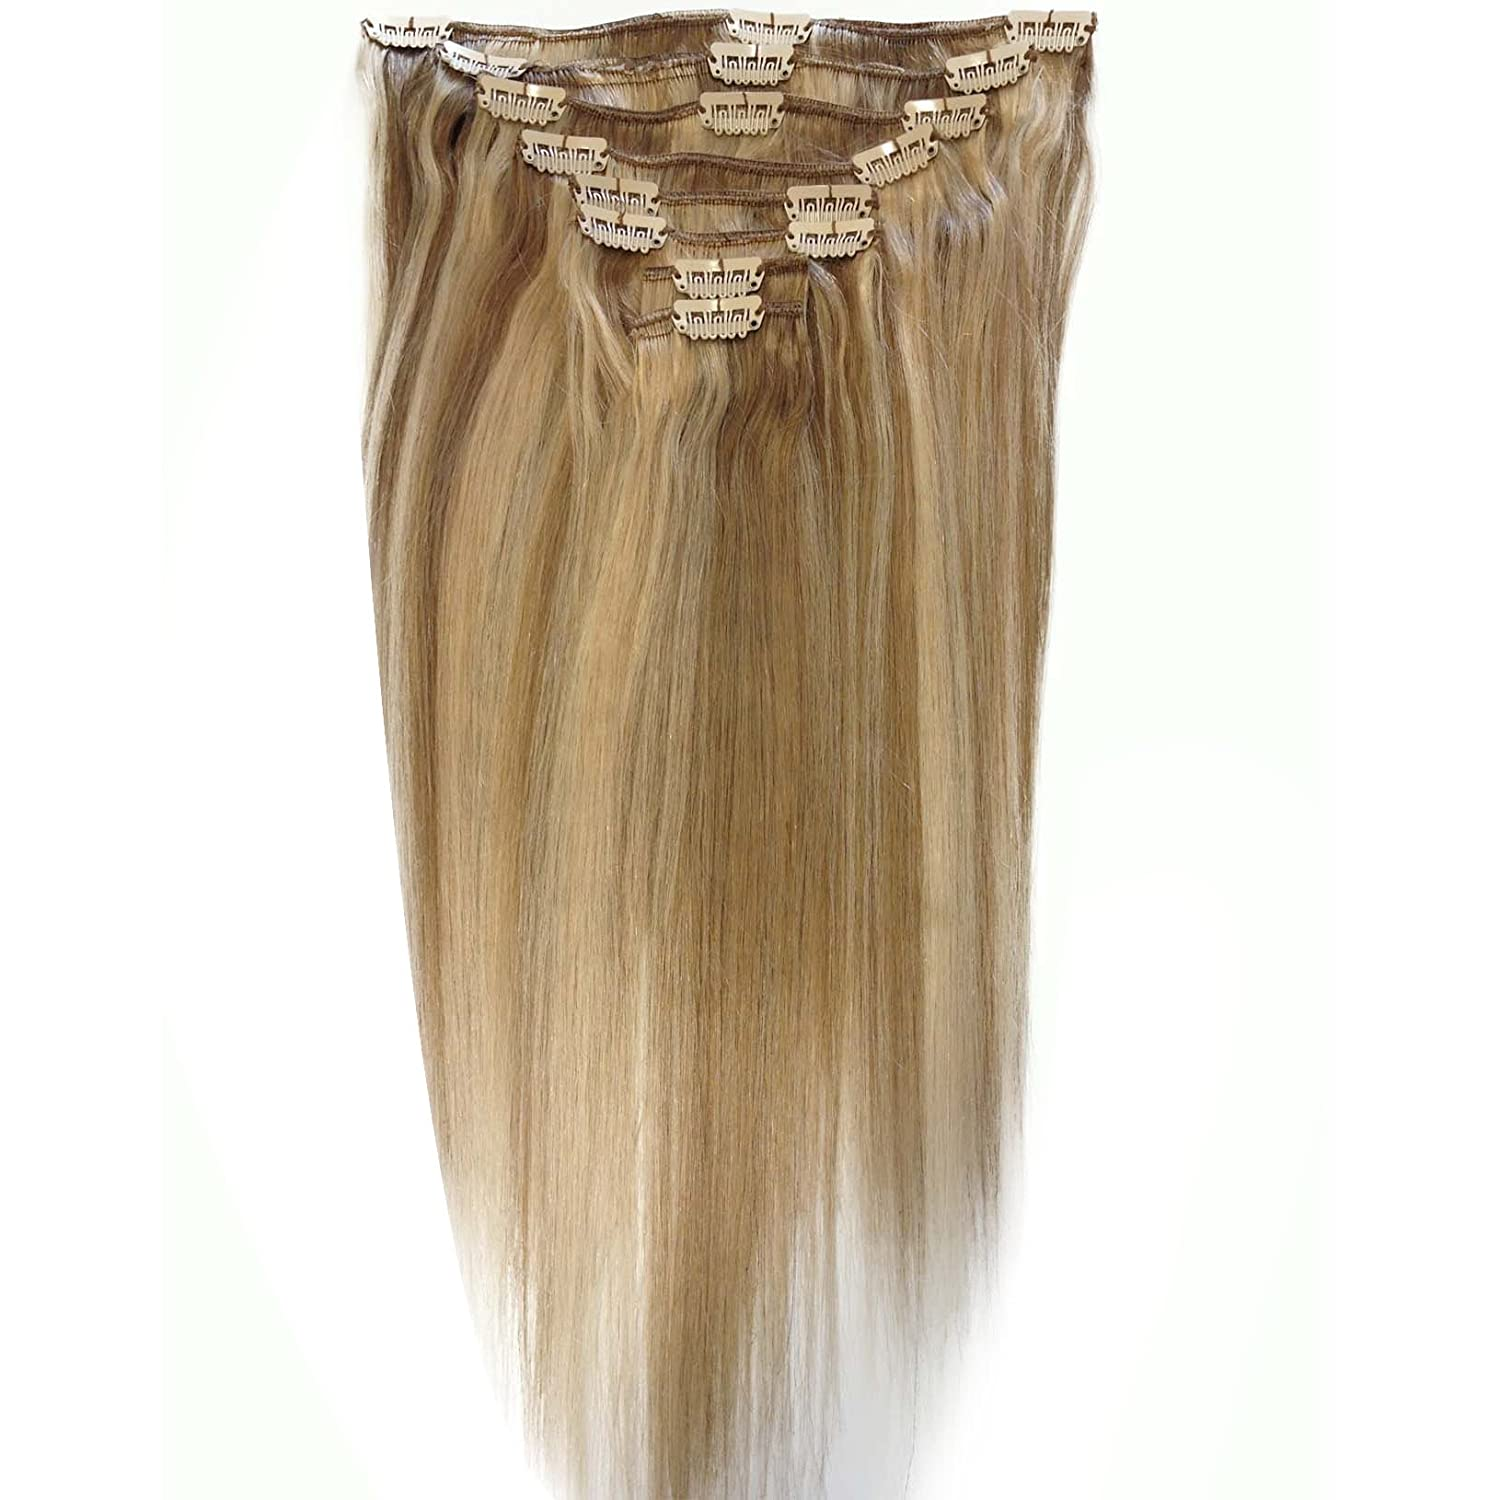 Amazon 14 Inch Brown Blonde 18613 Full Head Clip In Human